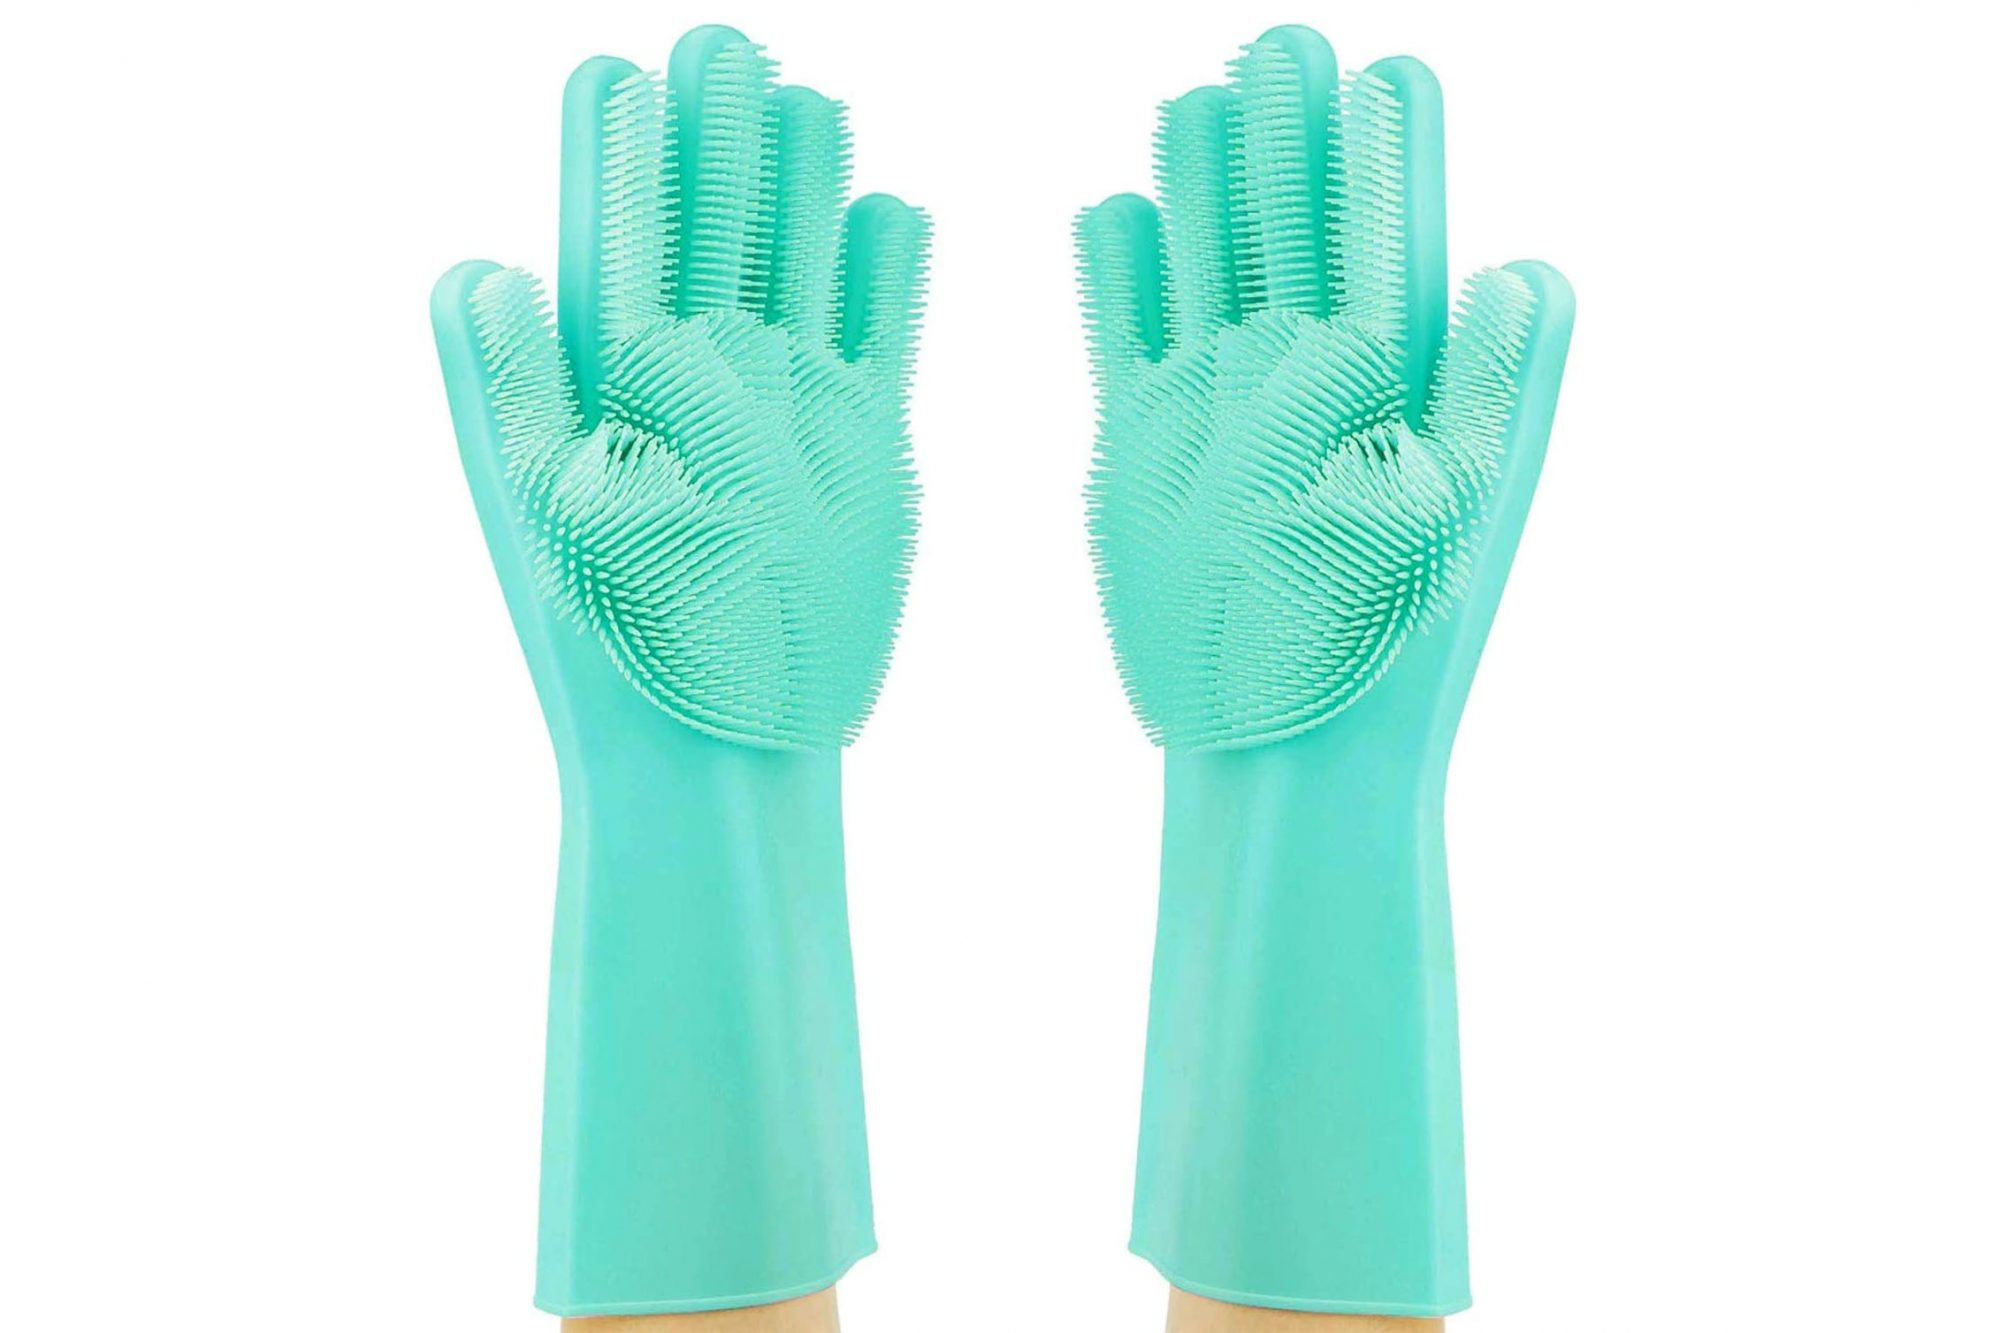 teal gloves with scrubbing palms on a white background